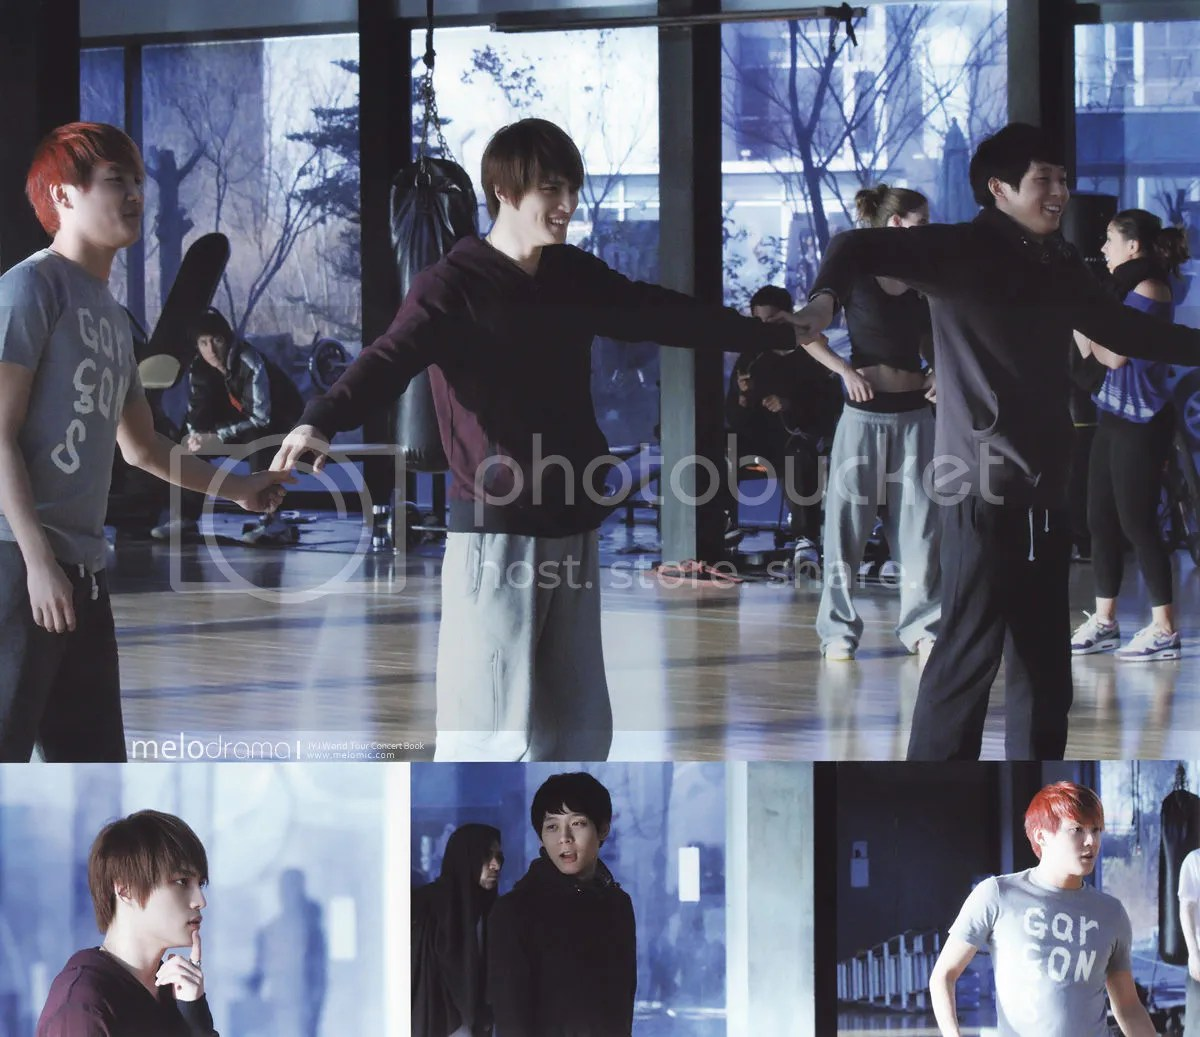 [PICS] JYJ World Tour Photobook